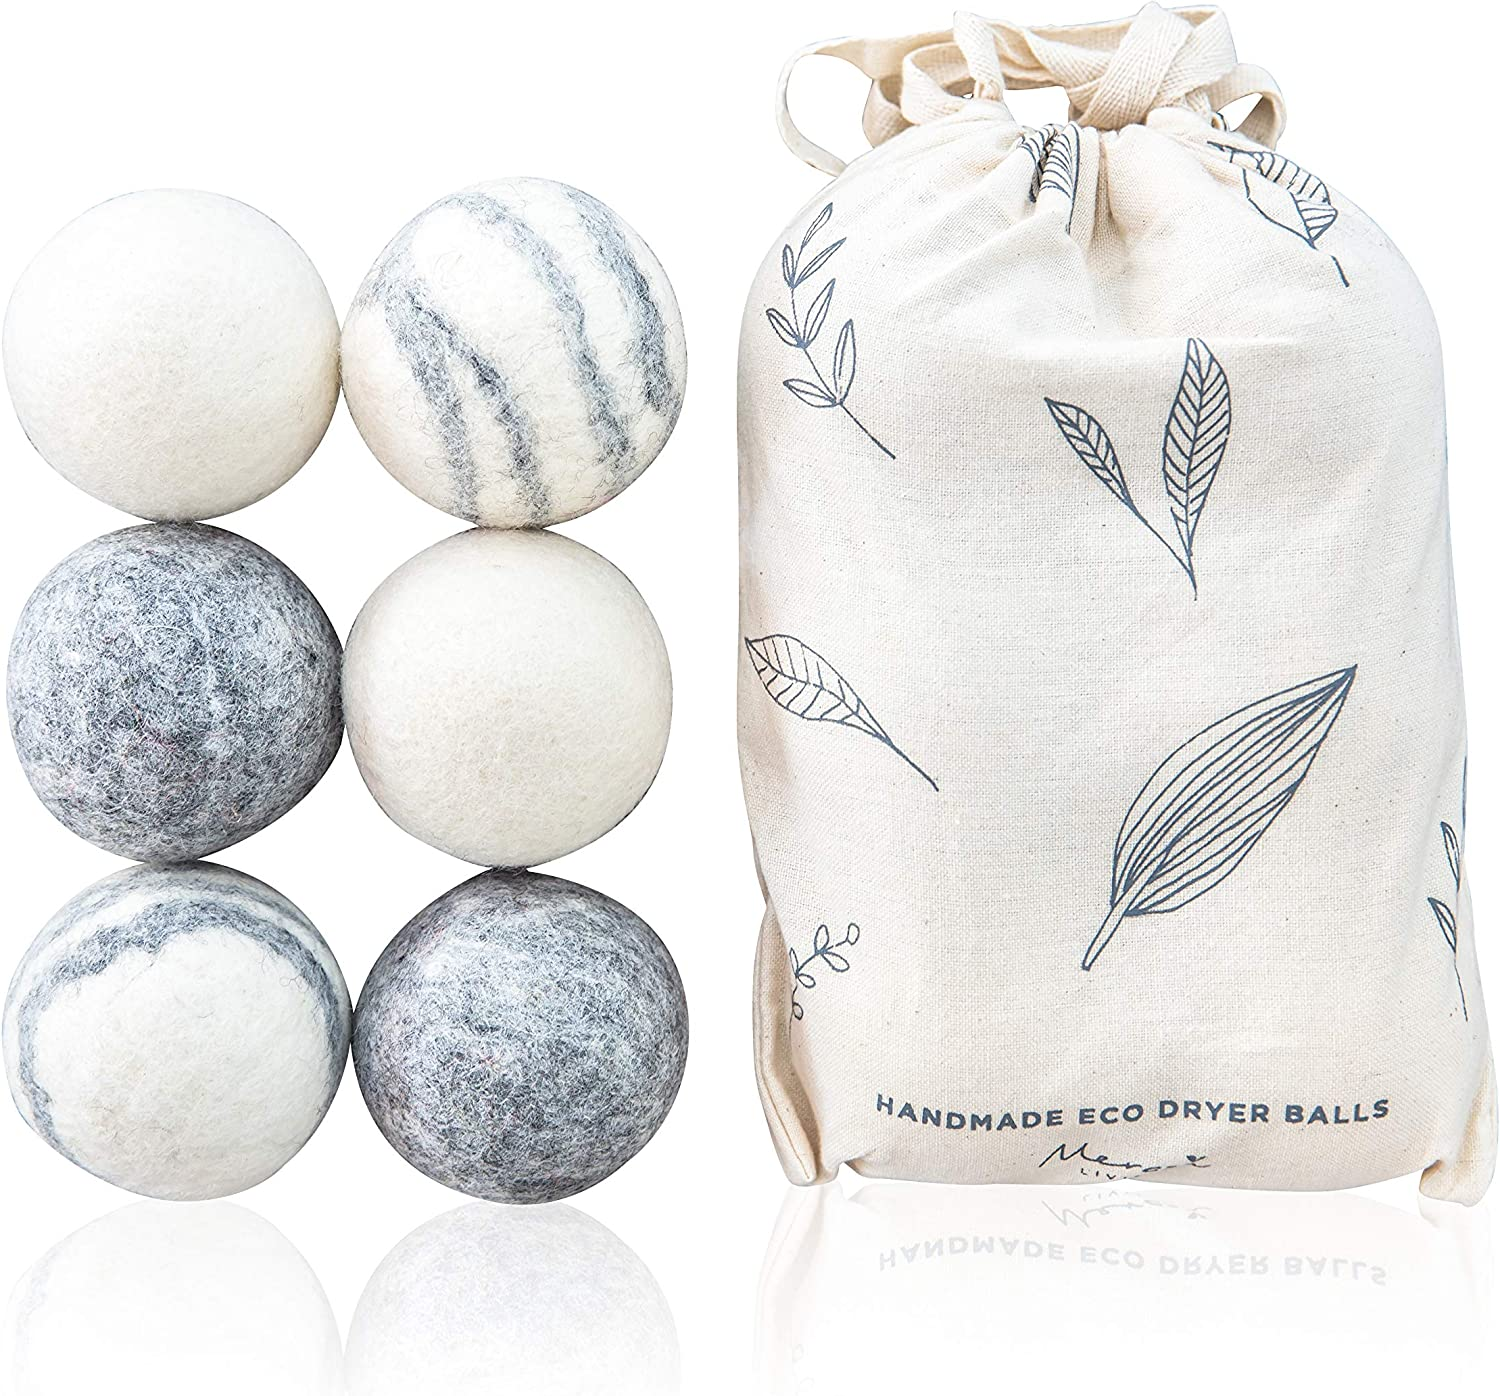 Eco Wool Dryer Balls, 100% Pure Wool, 6 Pack, XL - Natural Reusable Laundry Ball Set - Extra-Large, Eco-Friendly, Dryer Sheets and Fabric Softener Alternative - Anti Static, Reduces Drying Time